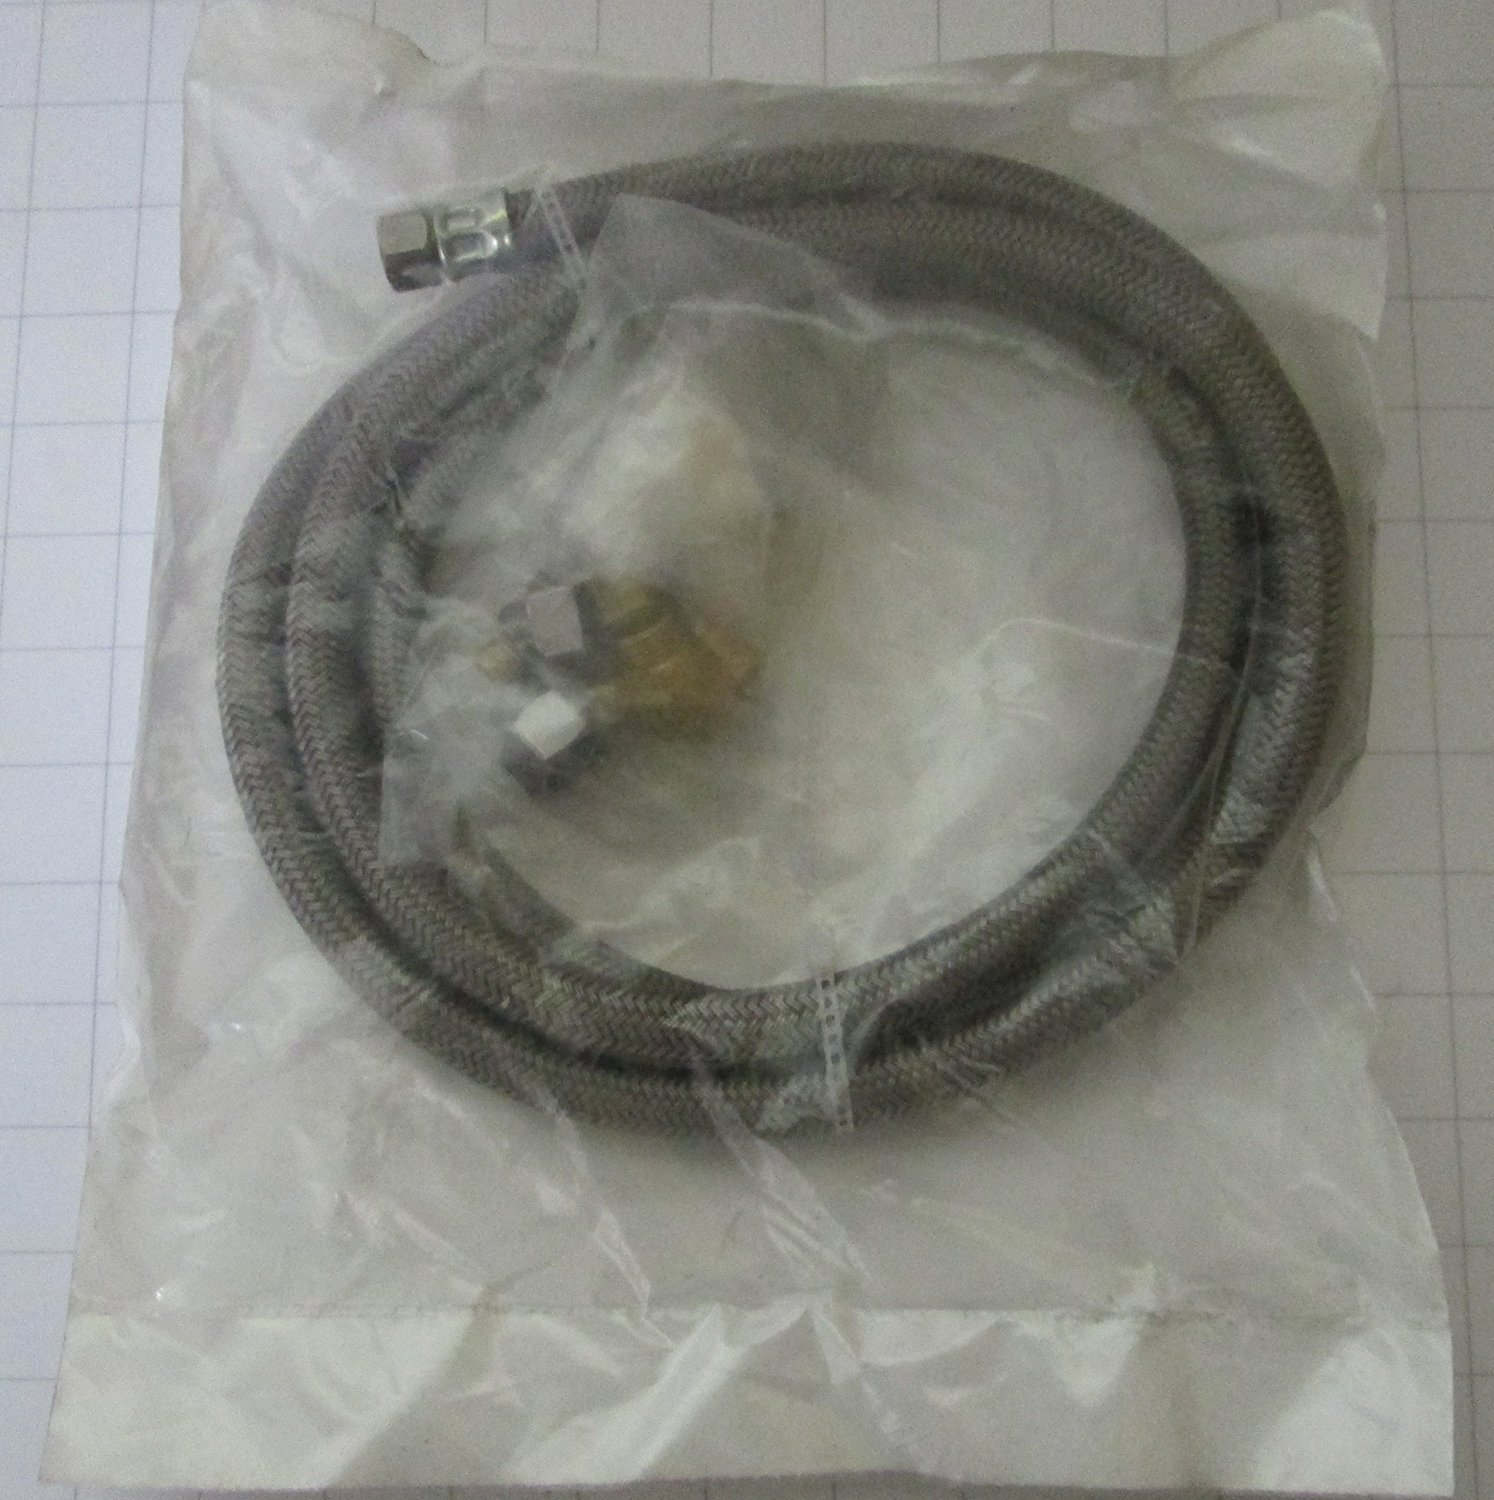 Universal Dishwasher Connector WX28X326 General Electric CECOMINOD048564